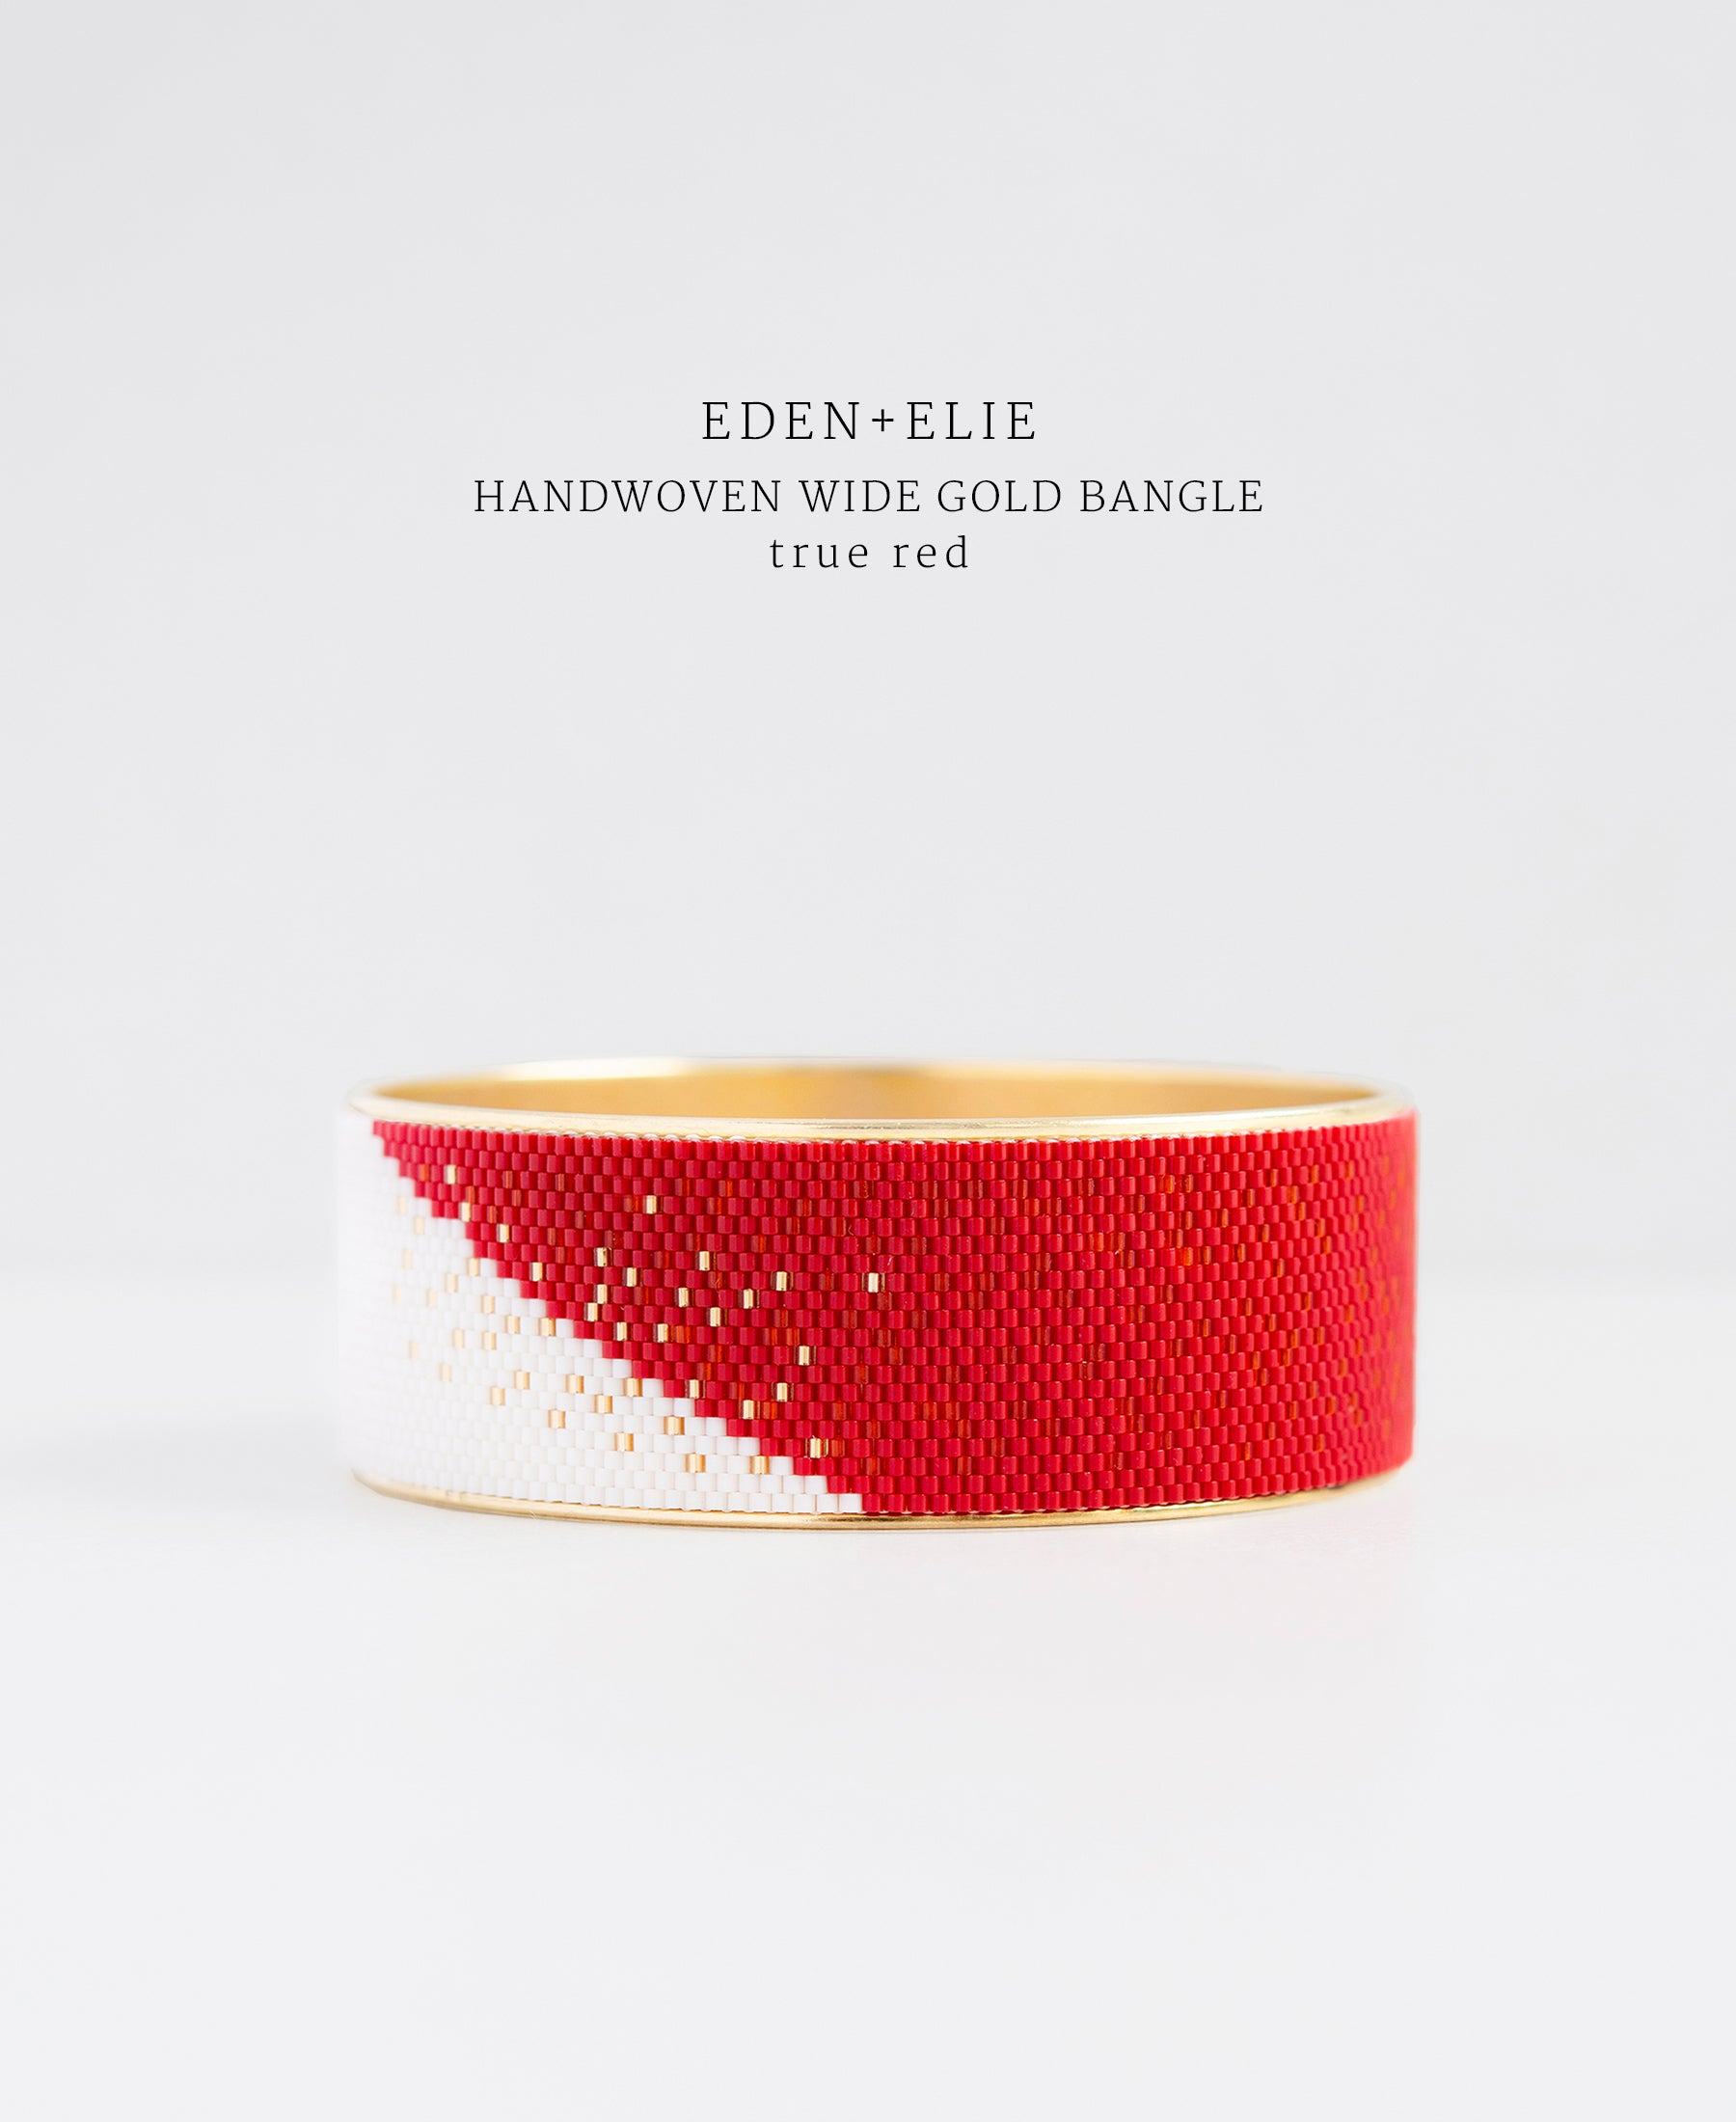 EDEN + ELIE gold plated jewelry Everyday wide gold bangle - true red